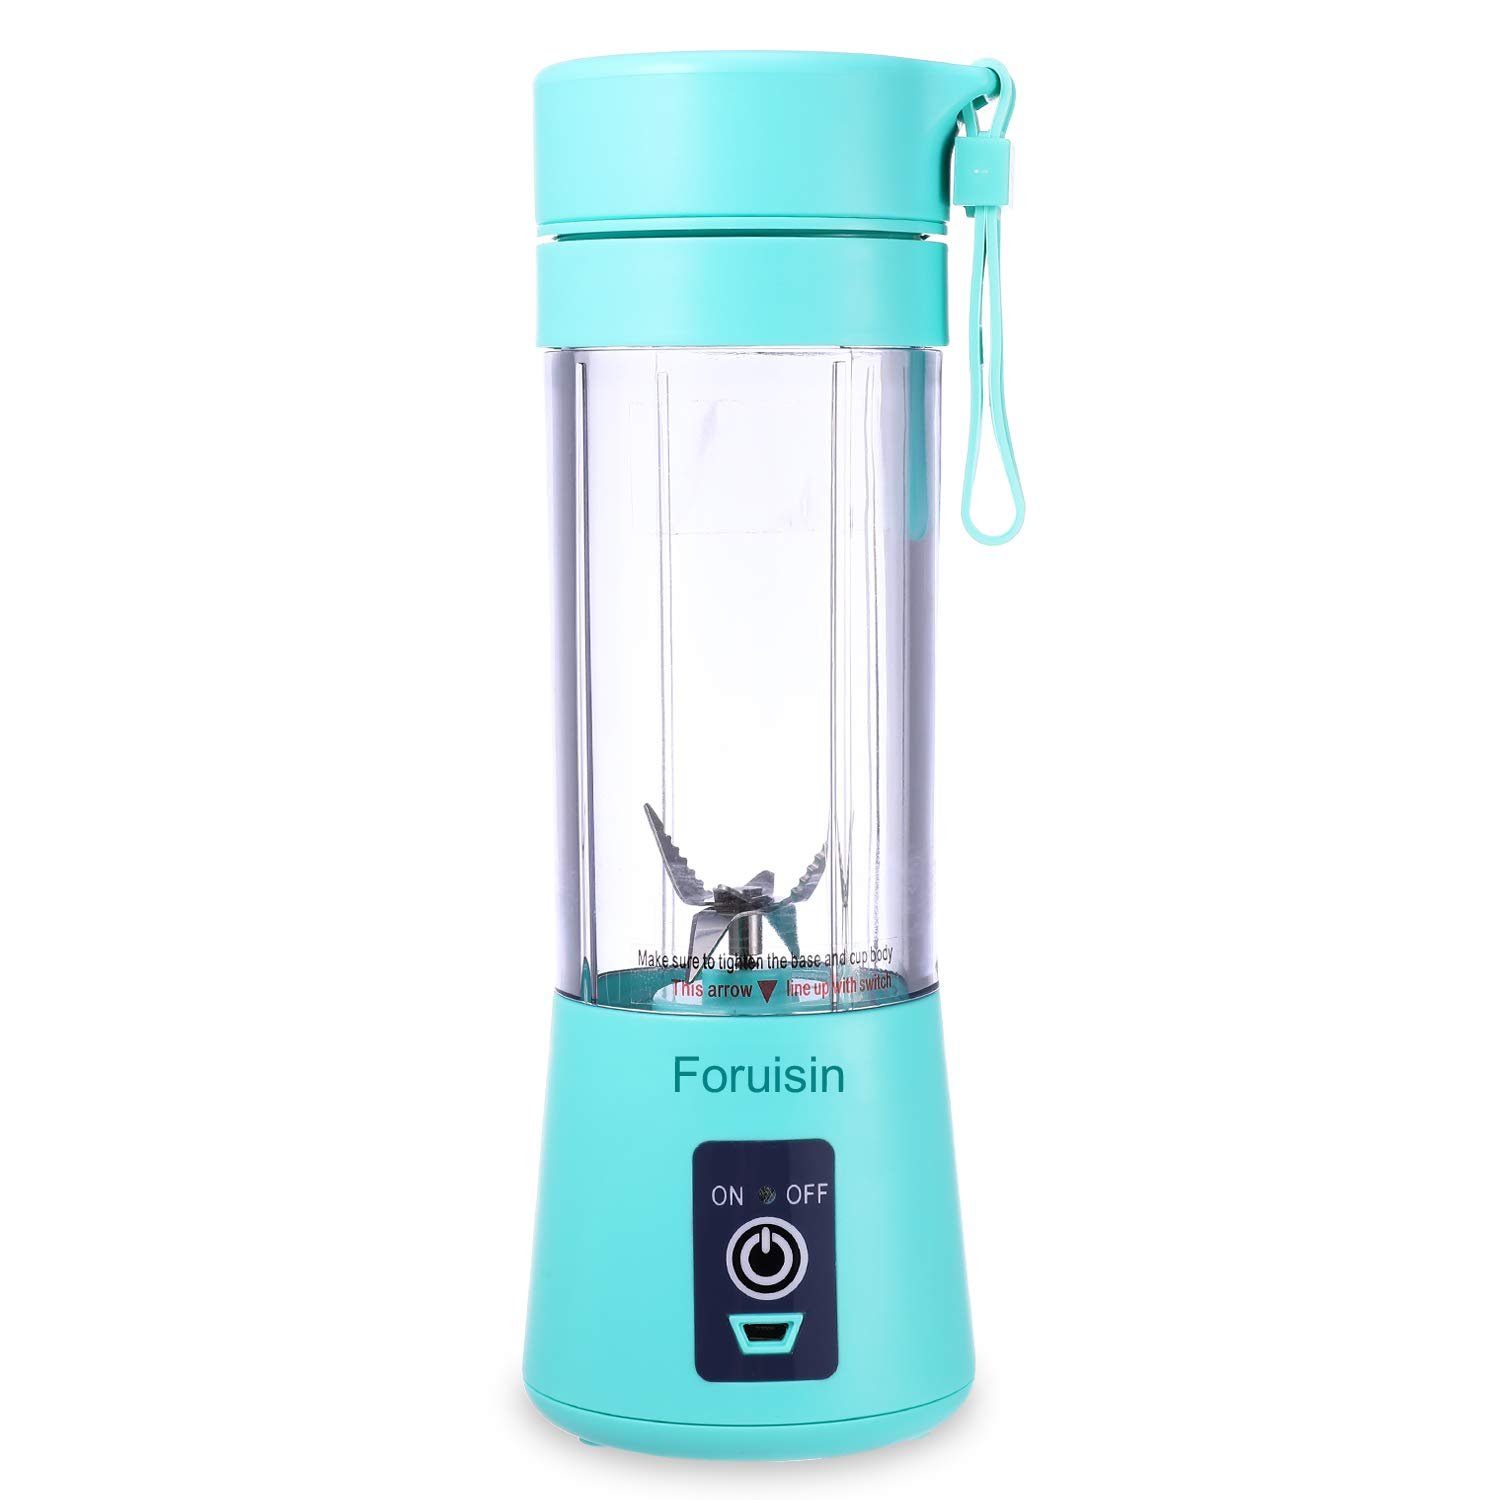 Foruisin Portable Personal Blender, Household Juicer fruit shake Mixer -Six Blades, 380ml Baby cooking machine with USB Charger Cable (Cyan) by Foruisin